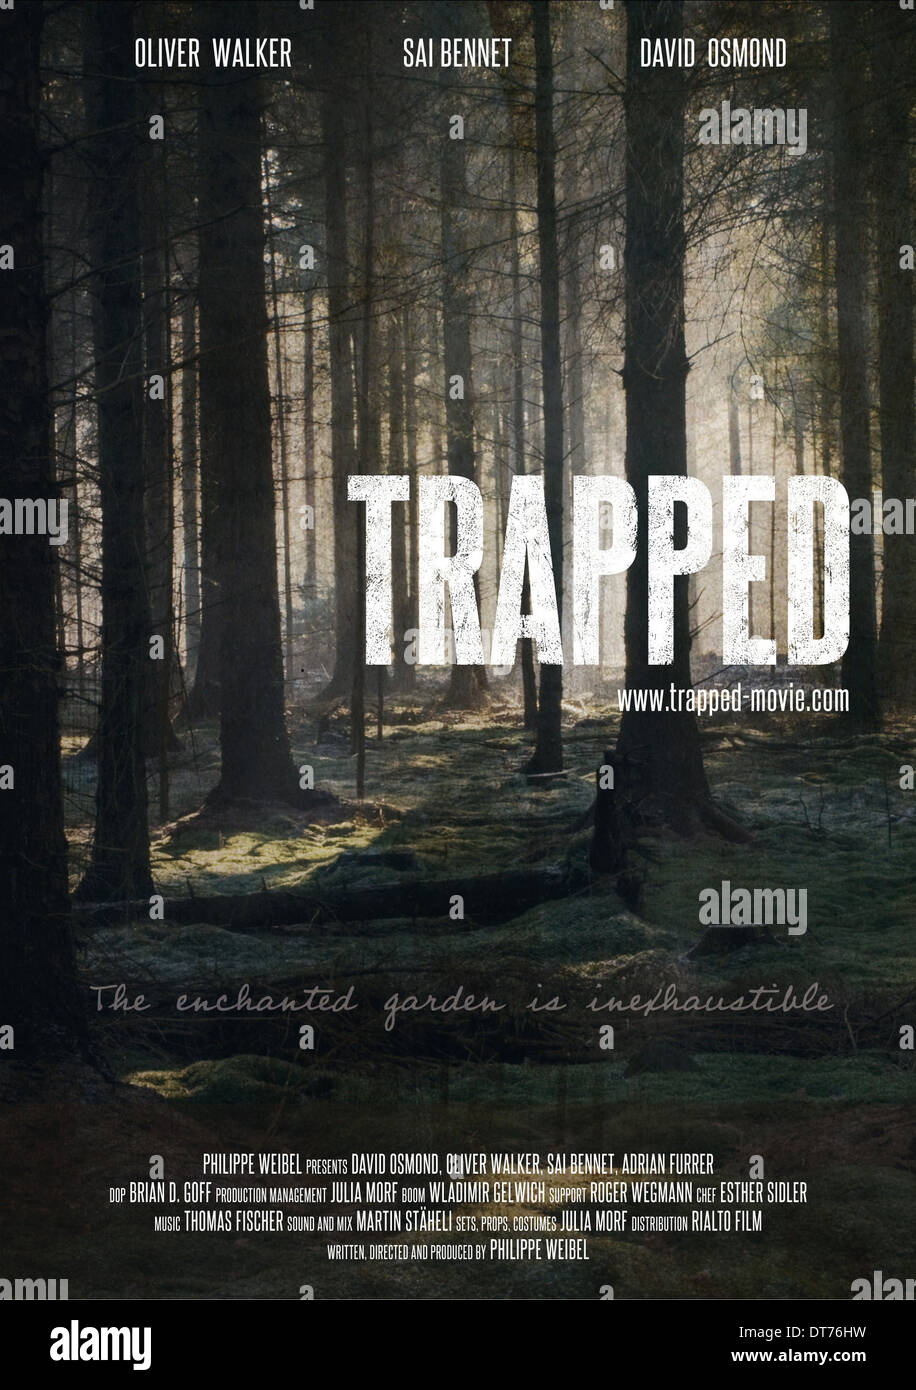 MOVIE POSTER TRAPPED (2012 Stock Photo: 66541717 - Alamy